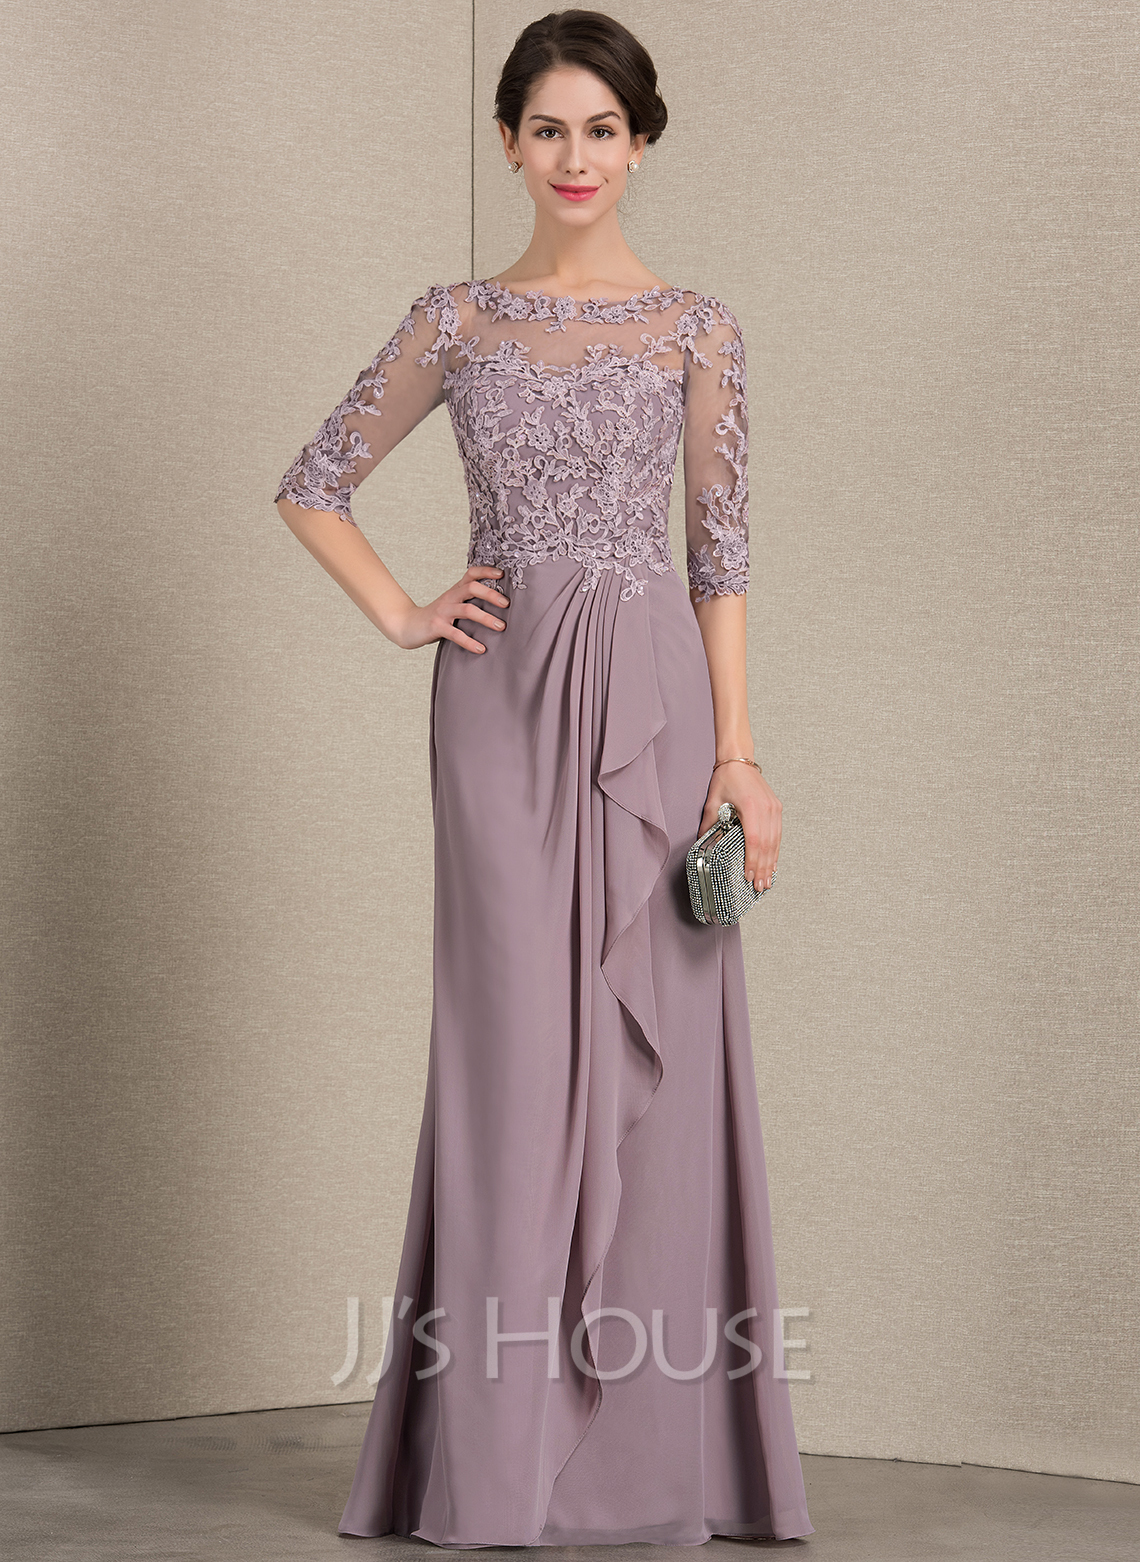 6b68fb67f82 A-Line Princess Scoop Neck Floor-Length Chiffon Lace Mother of the Bride.  Loading zoom